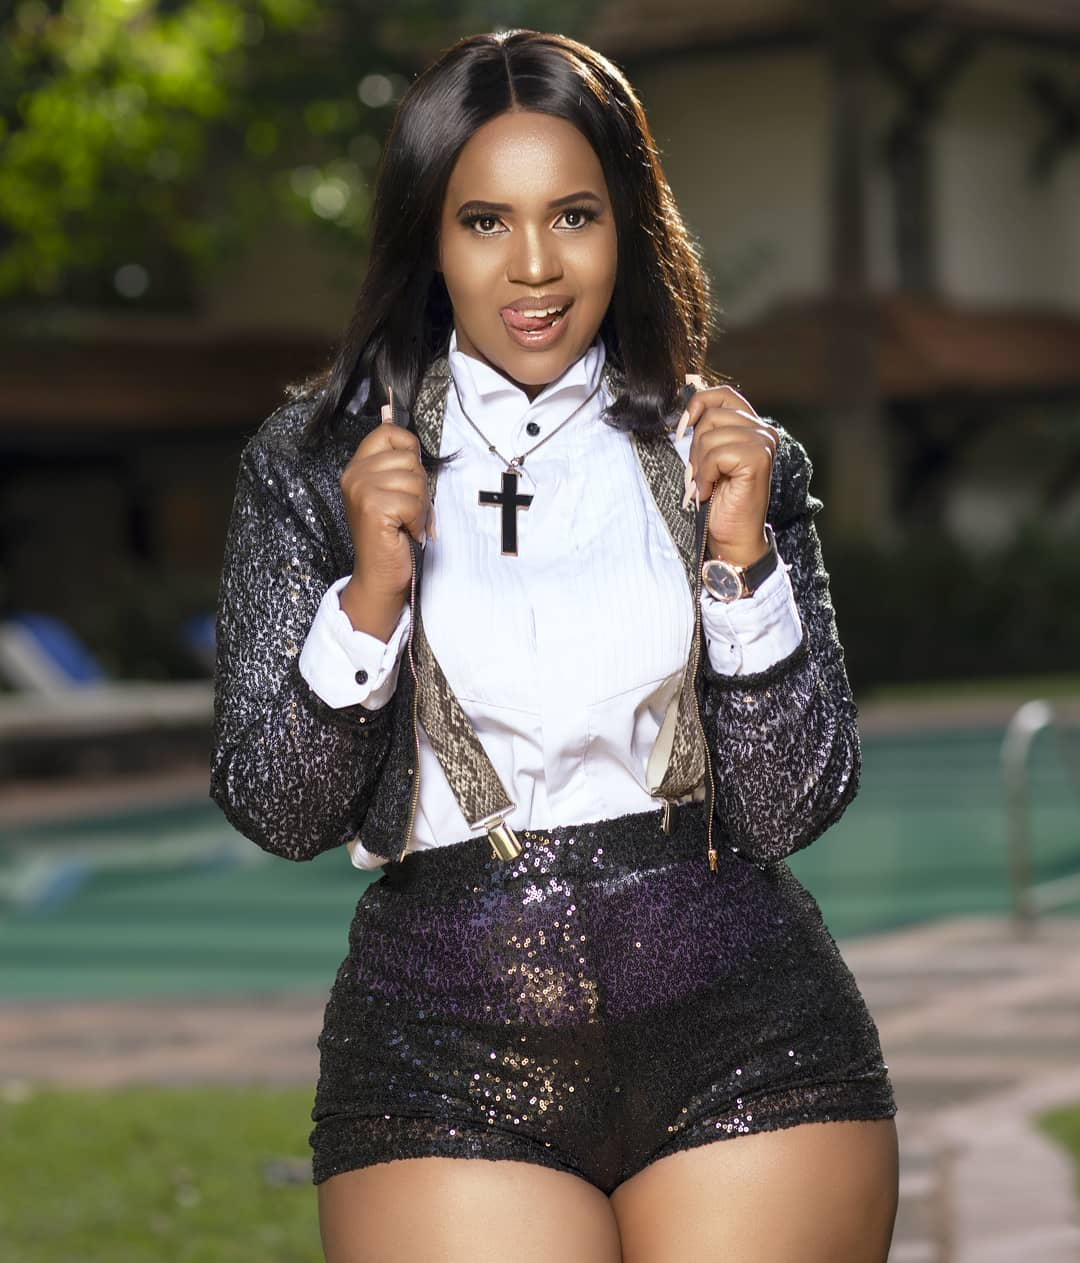 pierra 7 - Pierra Makena celebrates 38th birthday in style (PHOTOS)